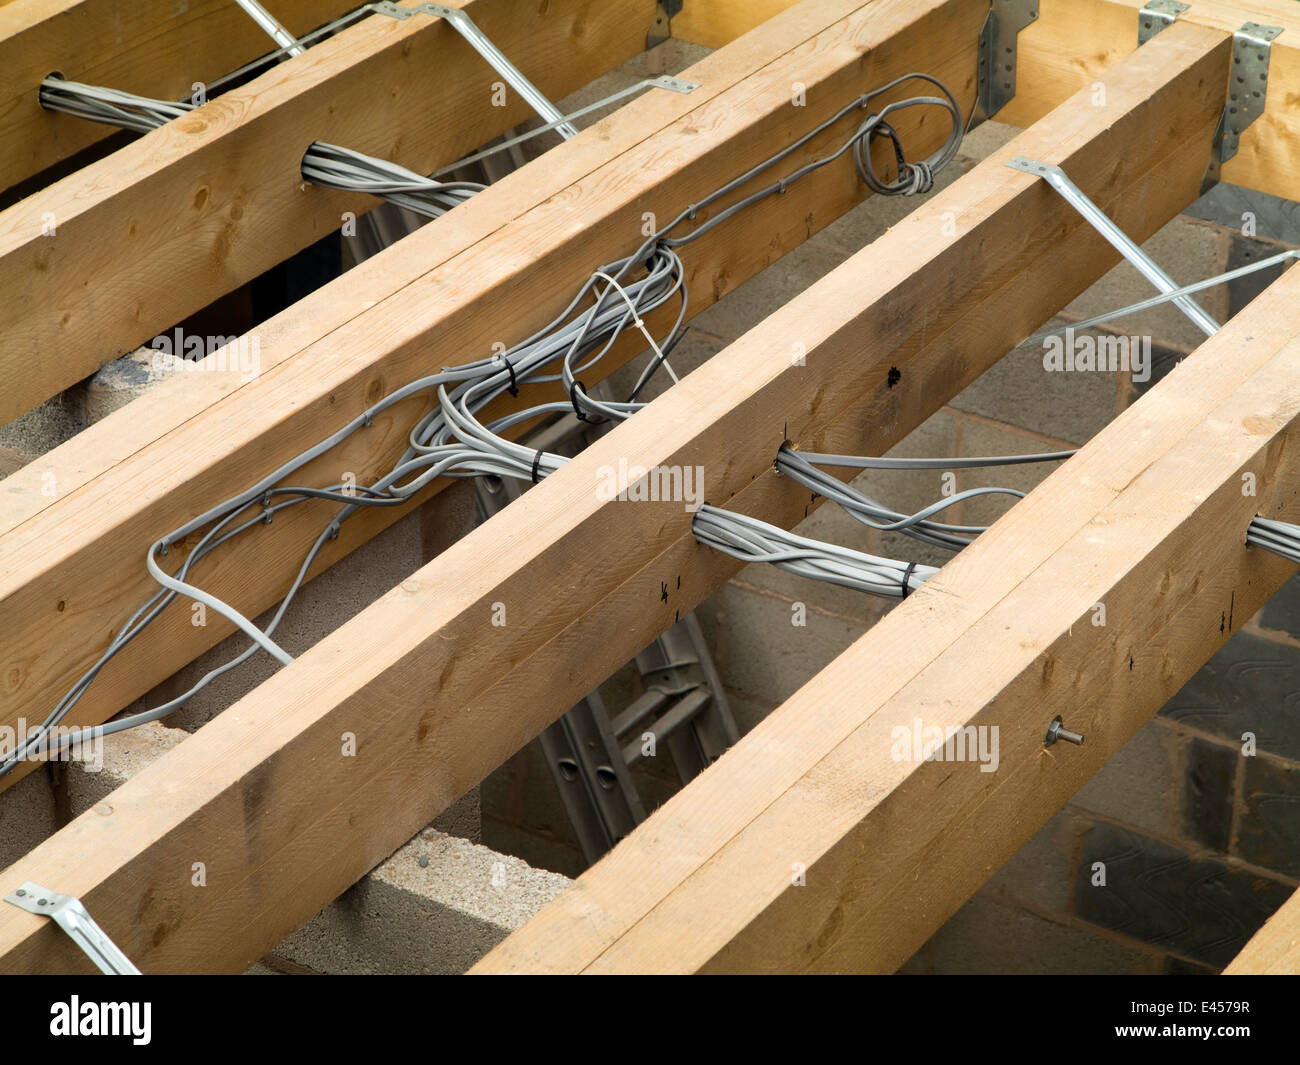 Wiring Electrical House Stock Photos & Wiring Electrical House ...